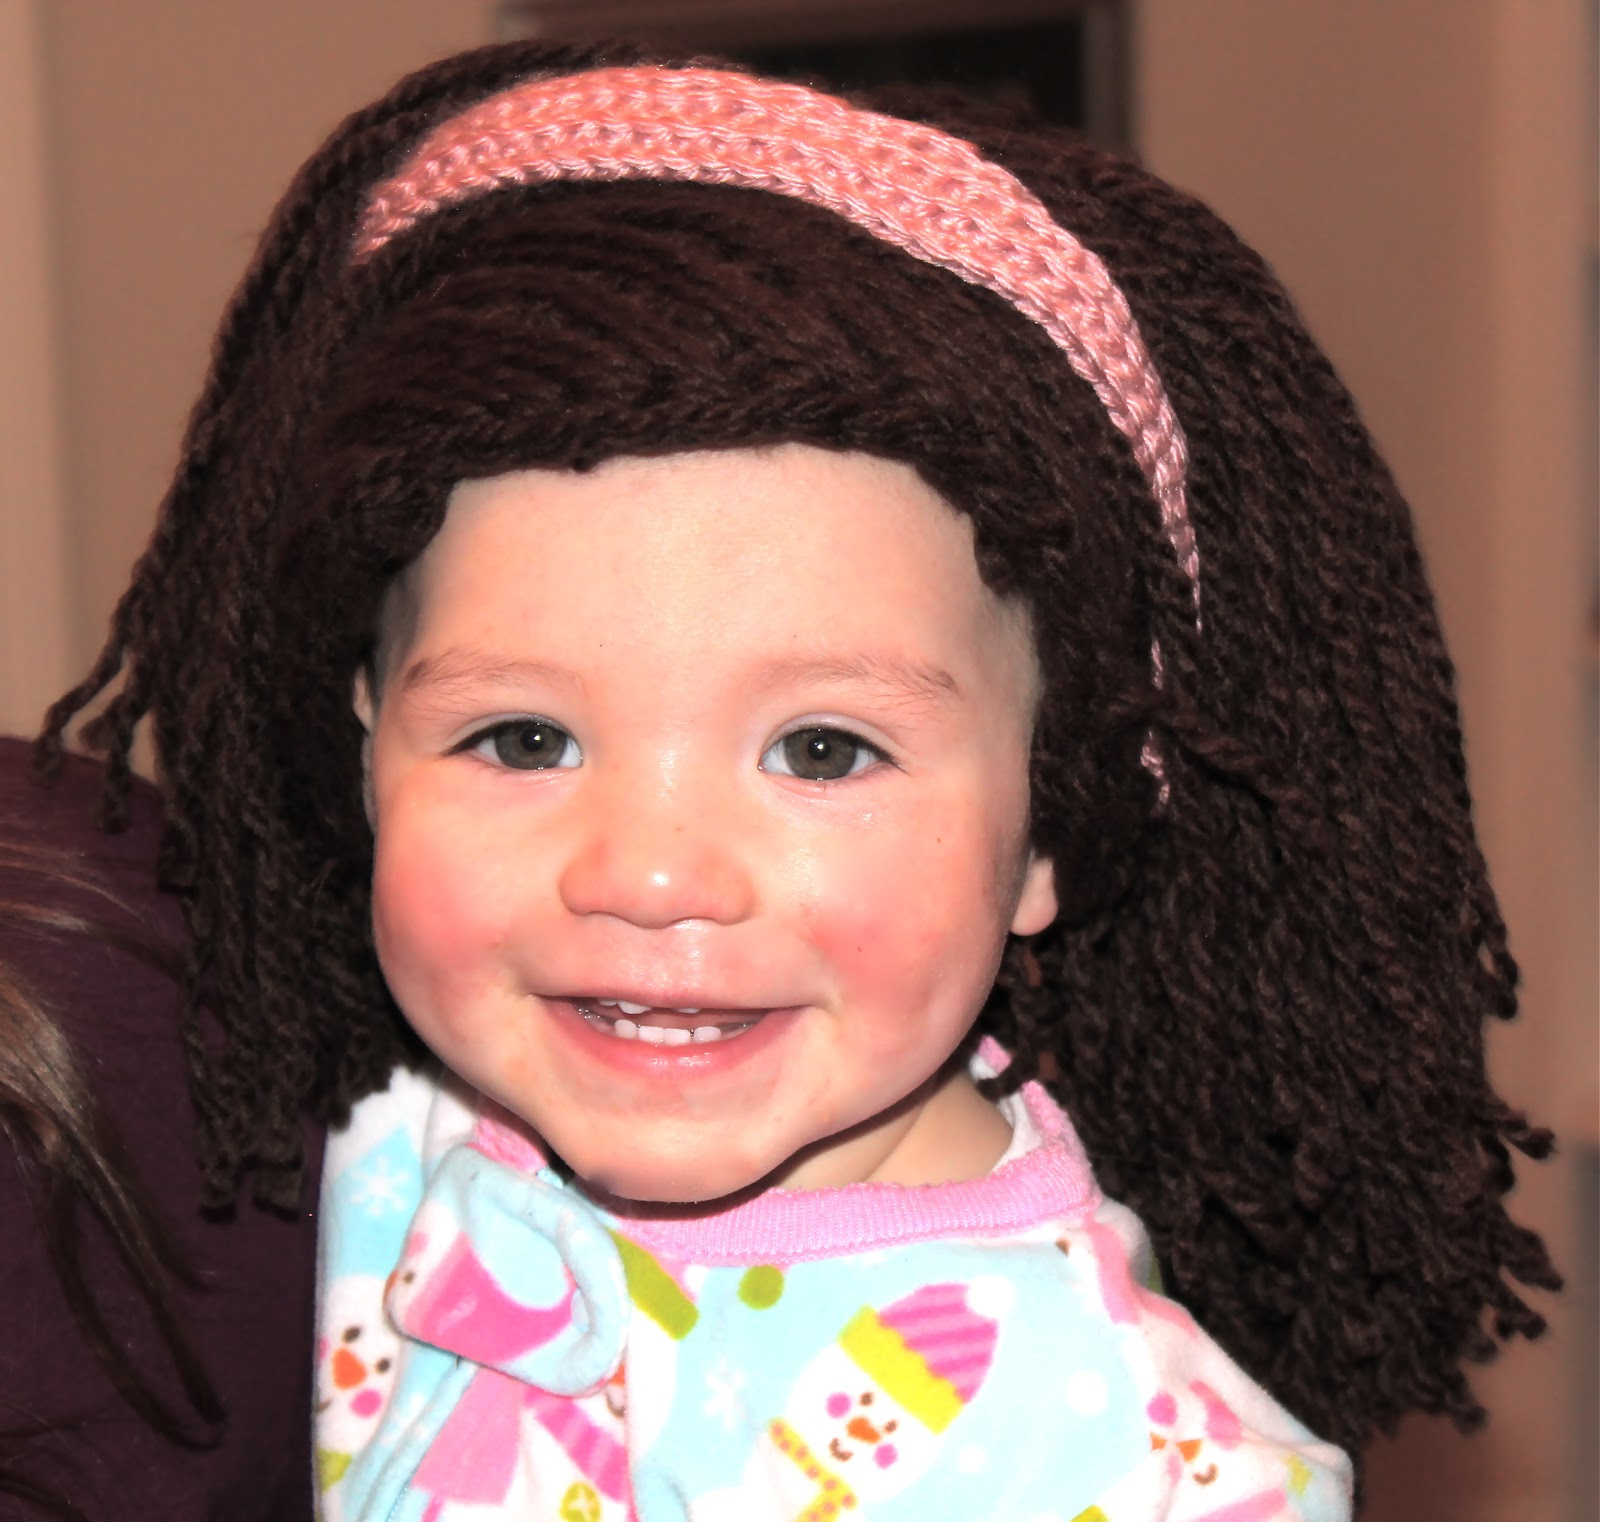 Crochet Hair Cap : This free crochet pattern will cover your babys bald head with thick ...